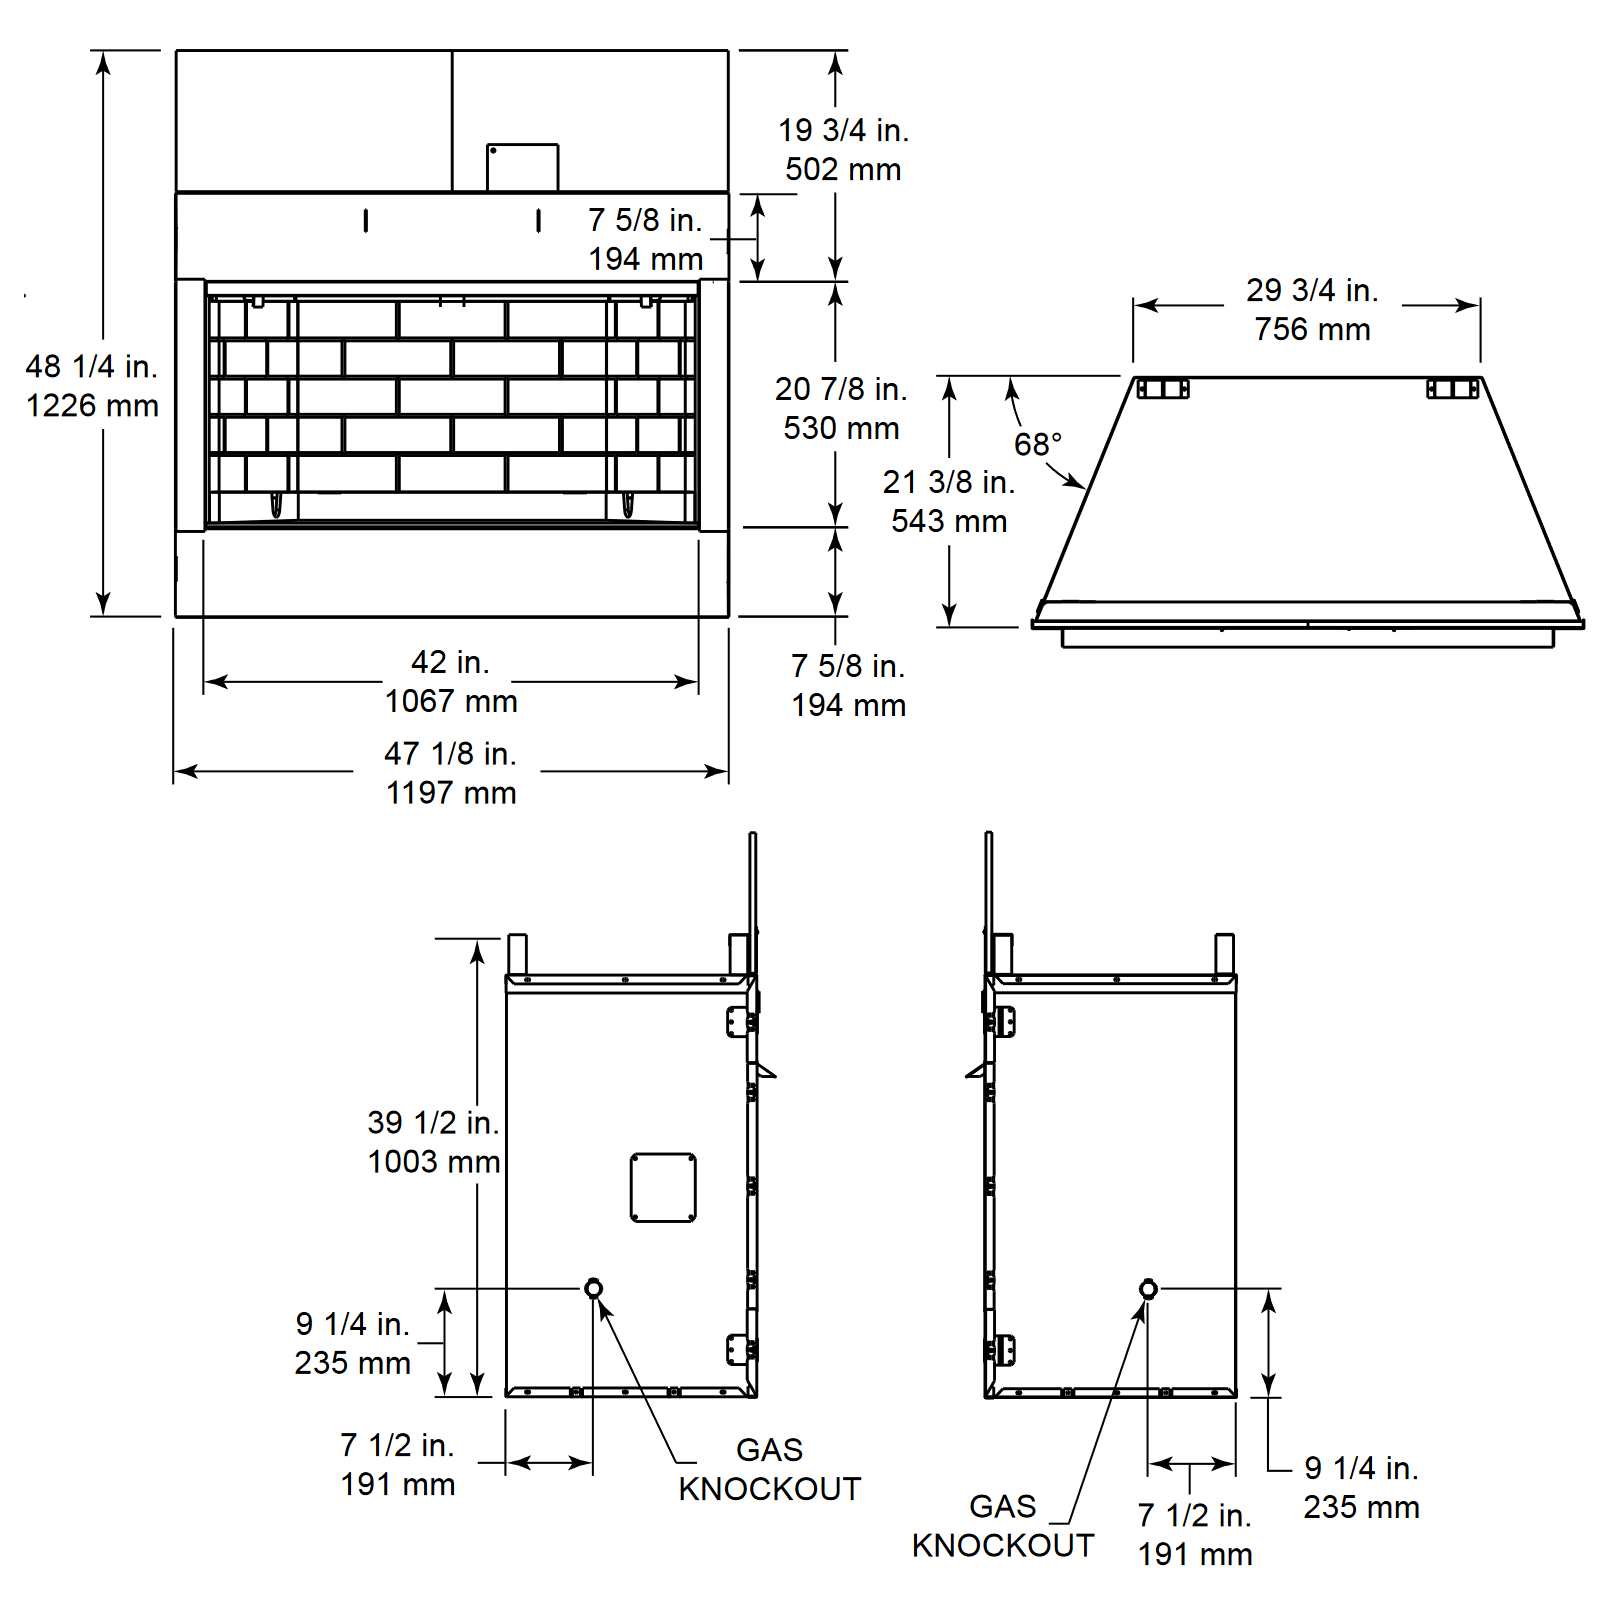 ODVILLAG-42 Technical Drawing 1